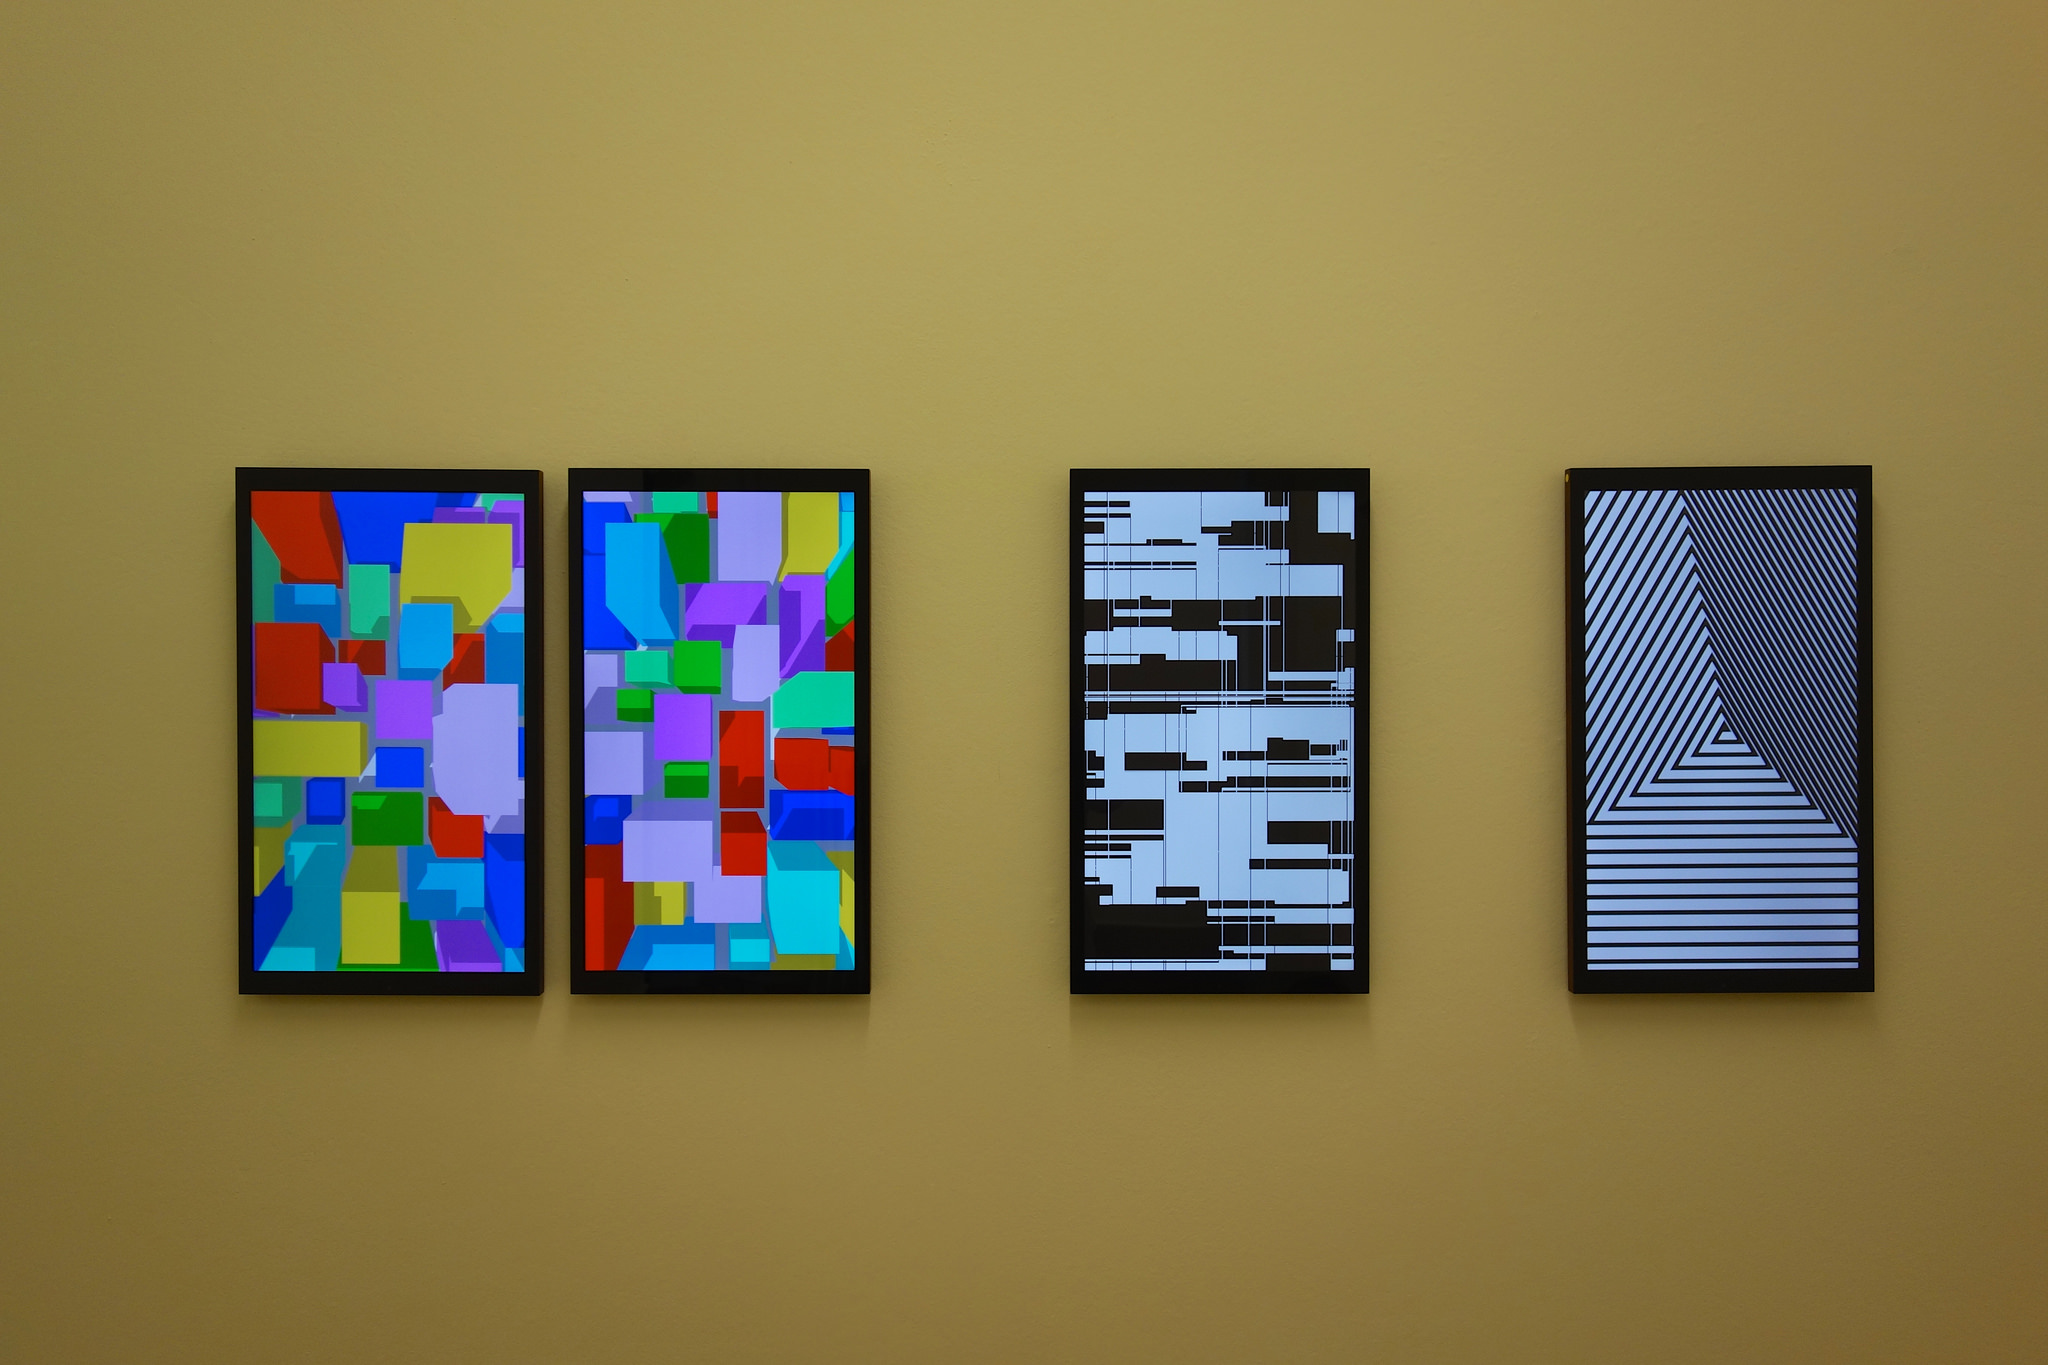 http://www.neogeocity.com by Rafael Rozendaal (left) and FRAMED 2.0 by Yugo Nakamura and William Lai.